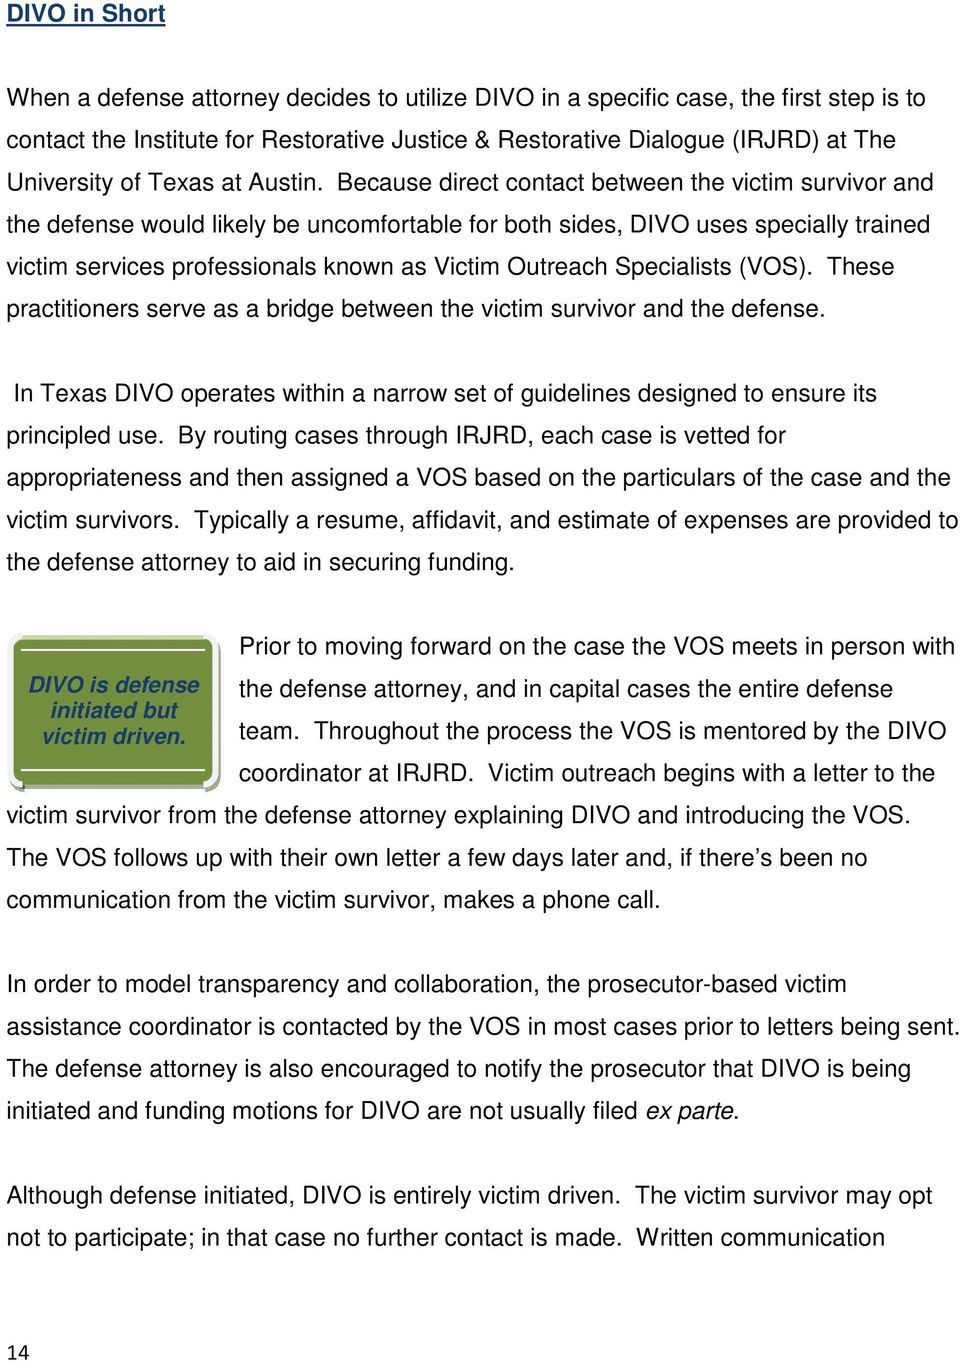 Because direct contact between the victim survivor and the defense would likely be uncomfortable for both sides, DIVO uses specially trained victim services professionals known as Victim Outreach